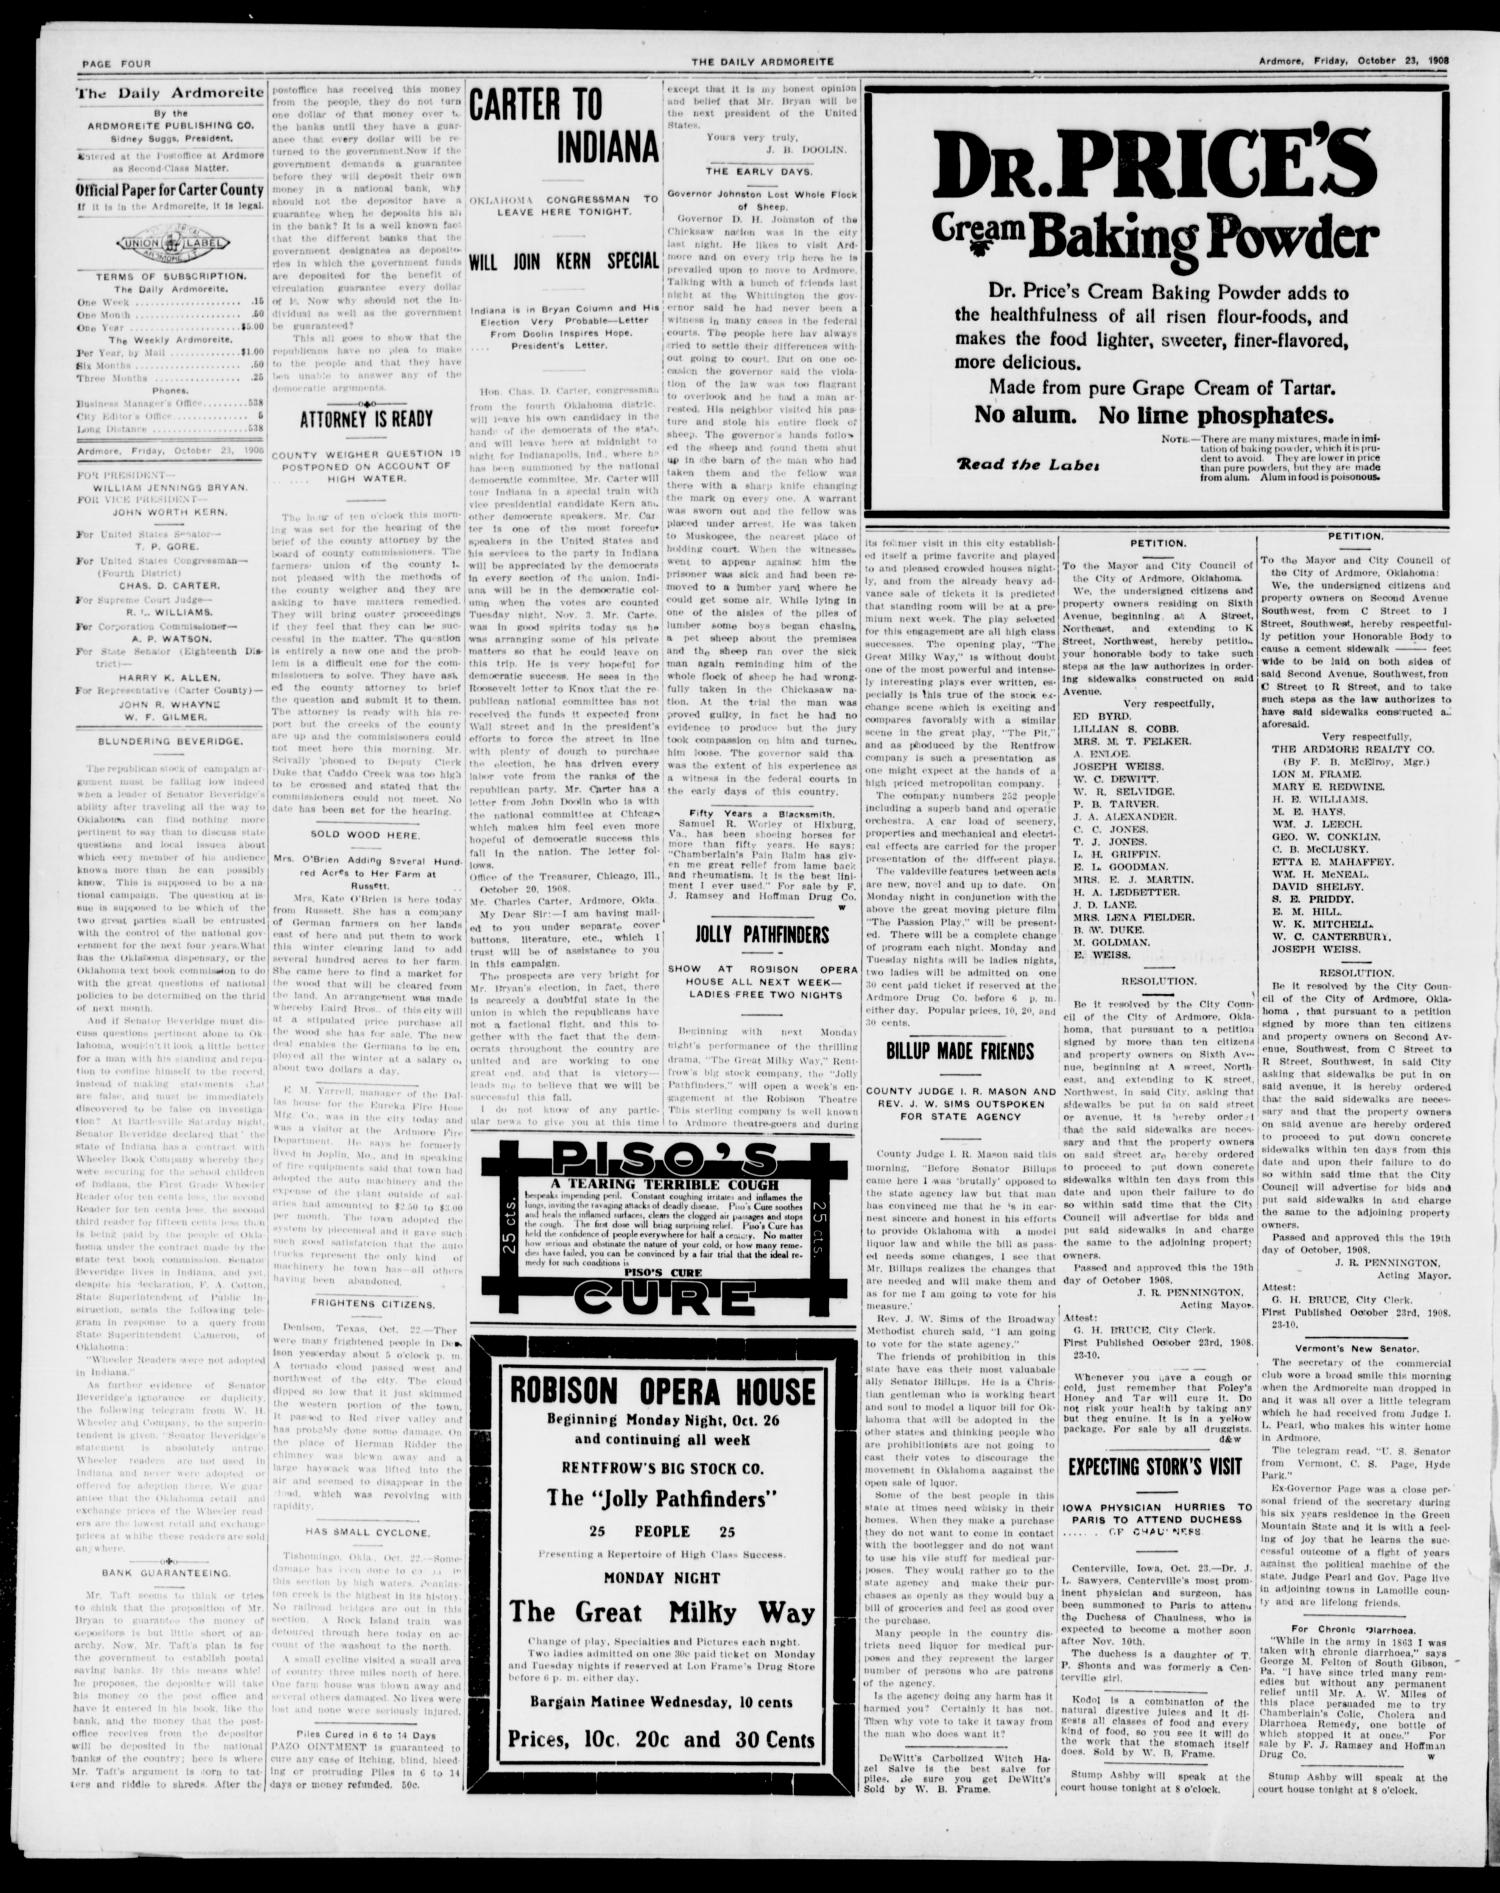 The Daily Ardmoreite. (Ardmore, Okla.), Vol. 15, No. 126, Ed. 1, Friday, October 23, 1908                                                                                                      [Sequence #]: 4 of 8